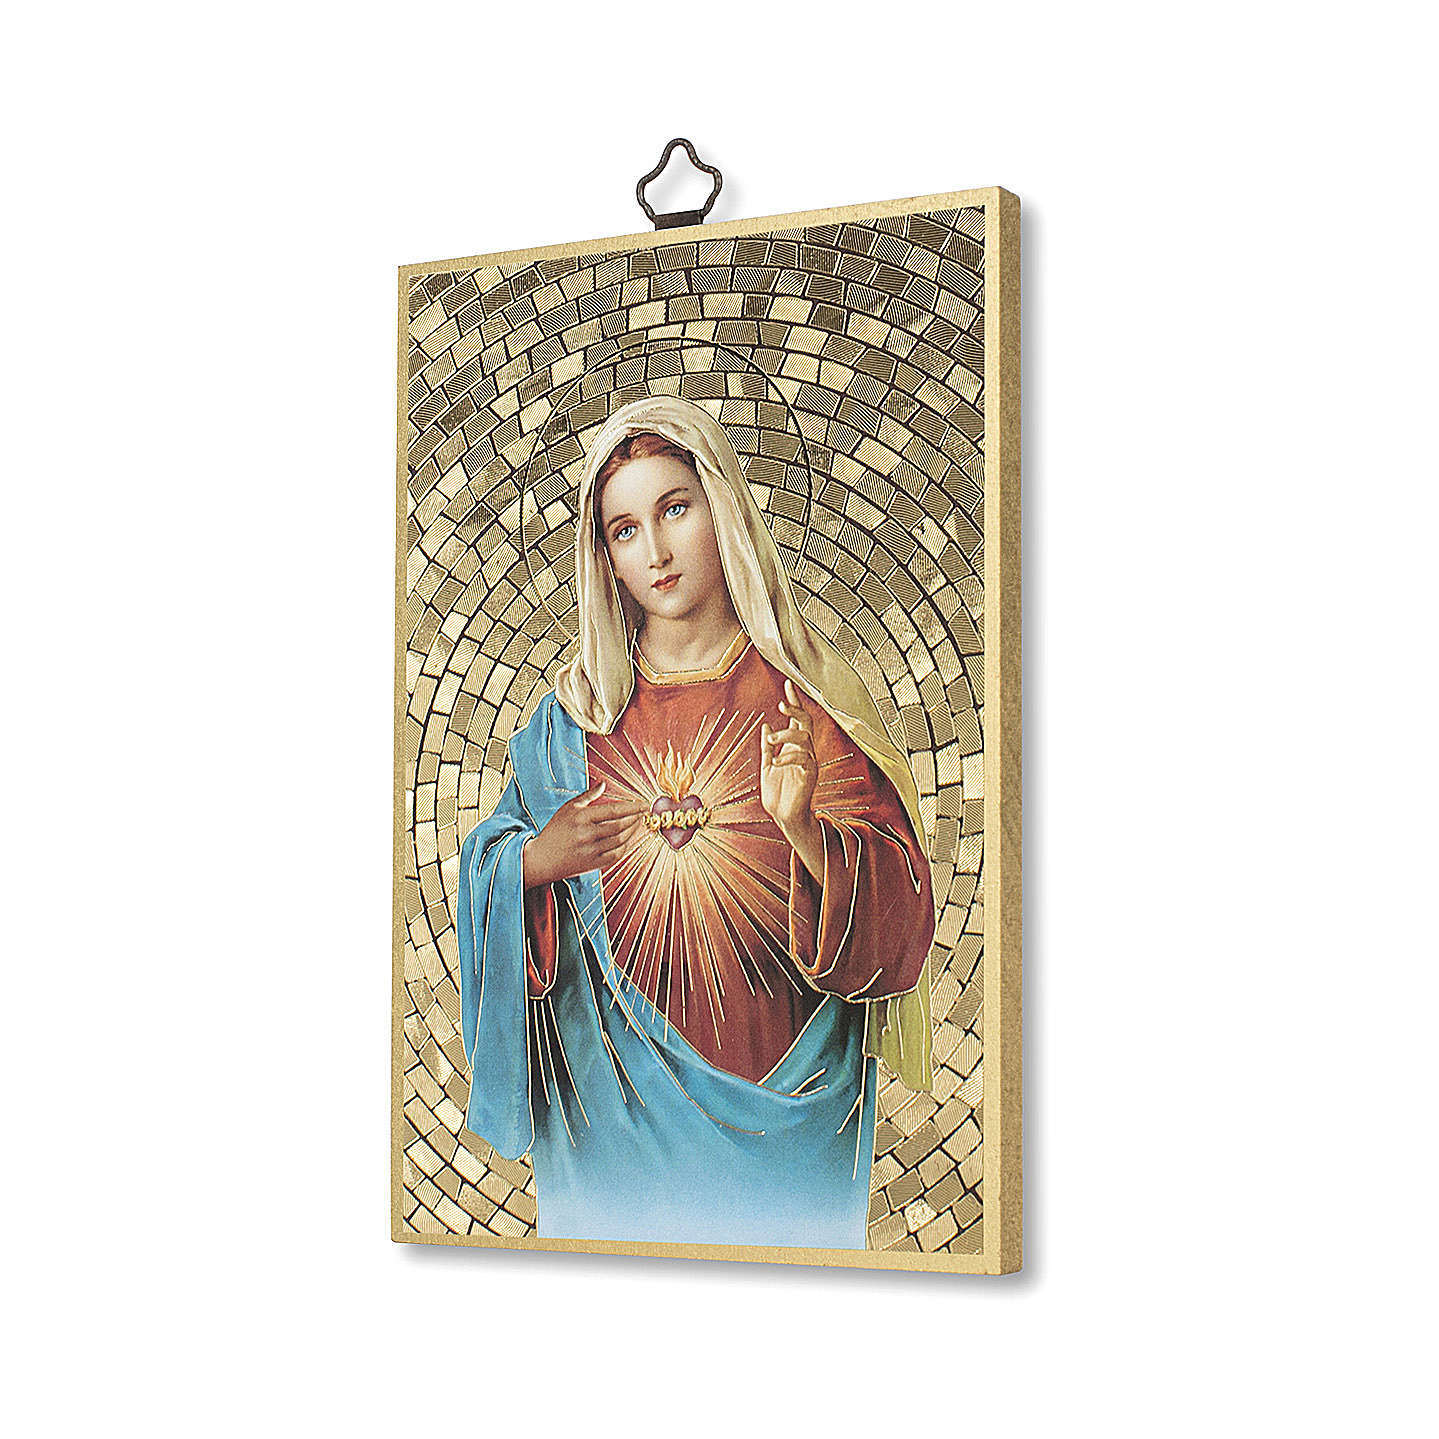 The Immaculate Heart of Mary woodcut 3